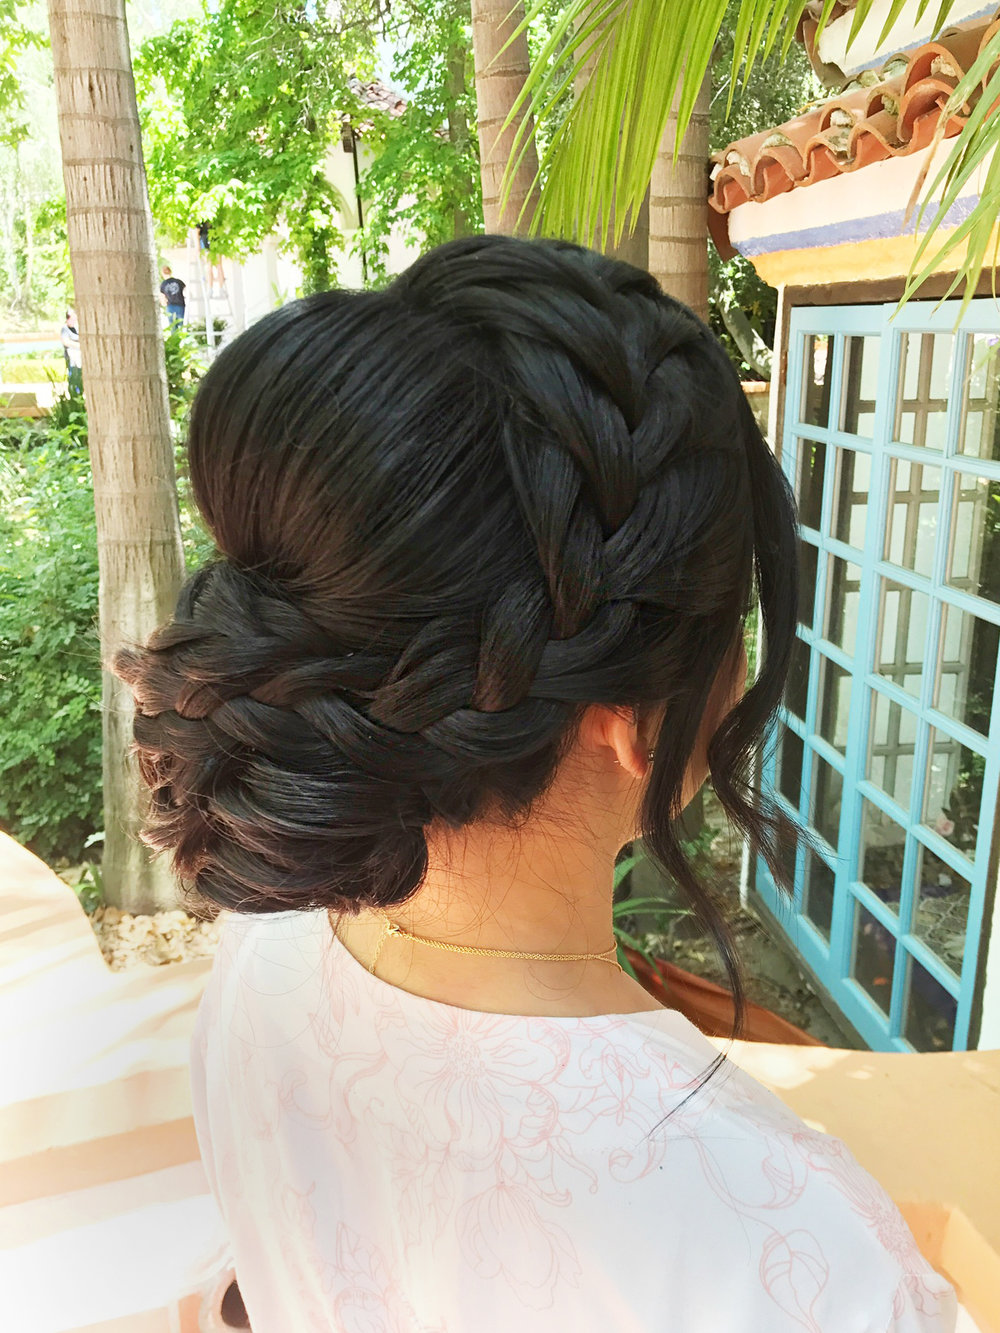 Braid updo hairstyle low bun beauty affair los angeles.JPG